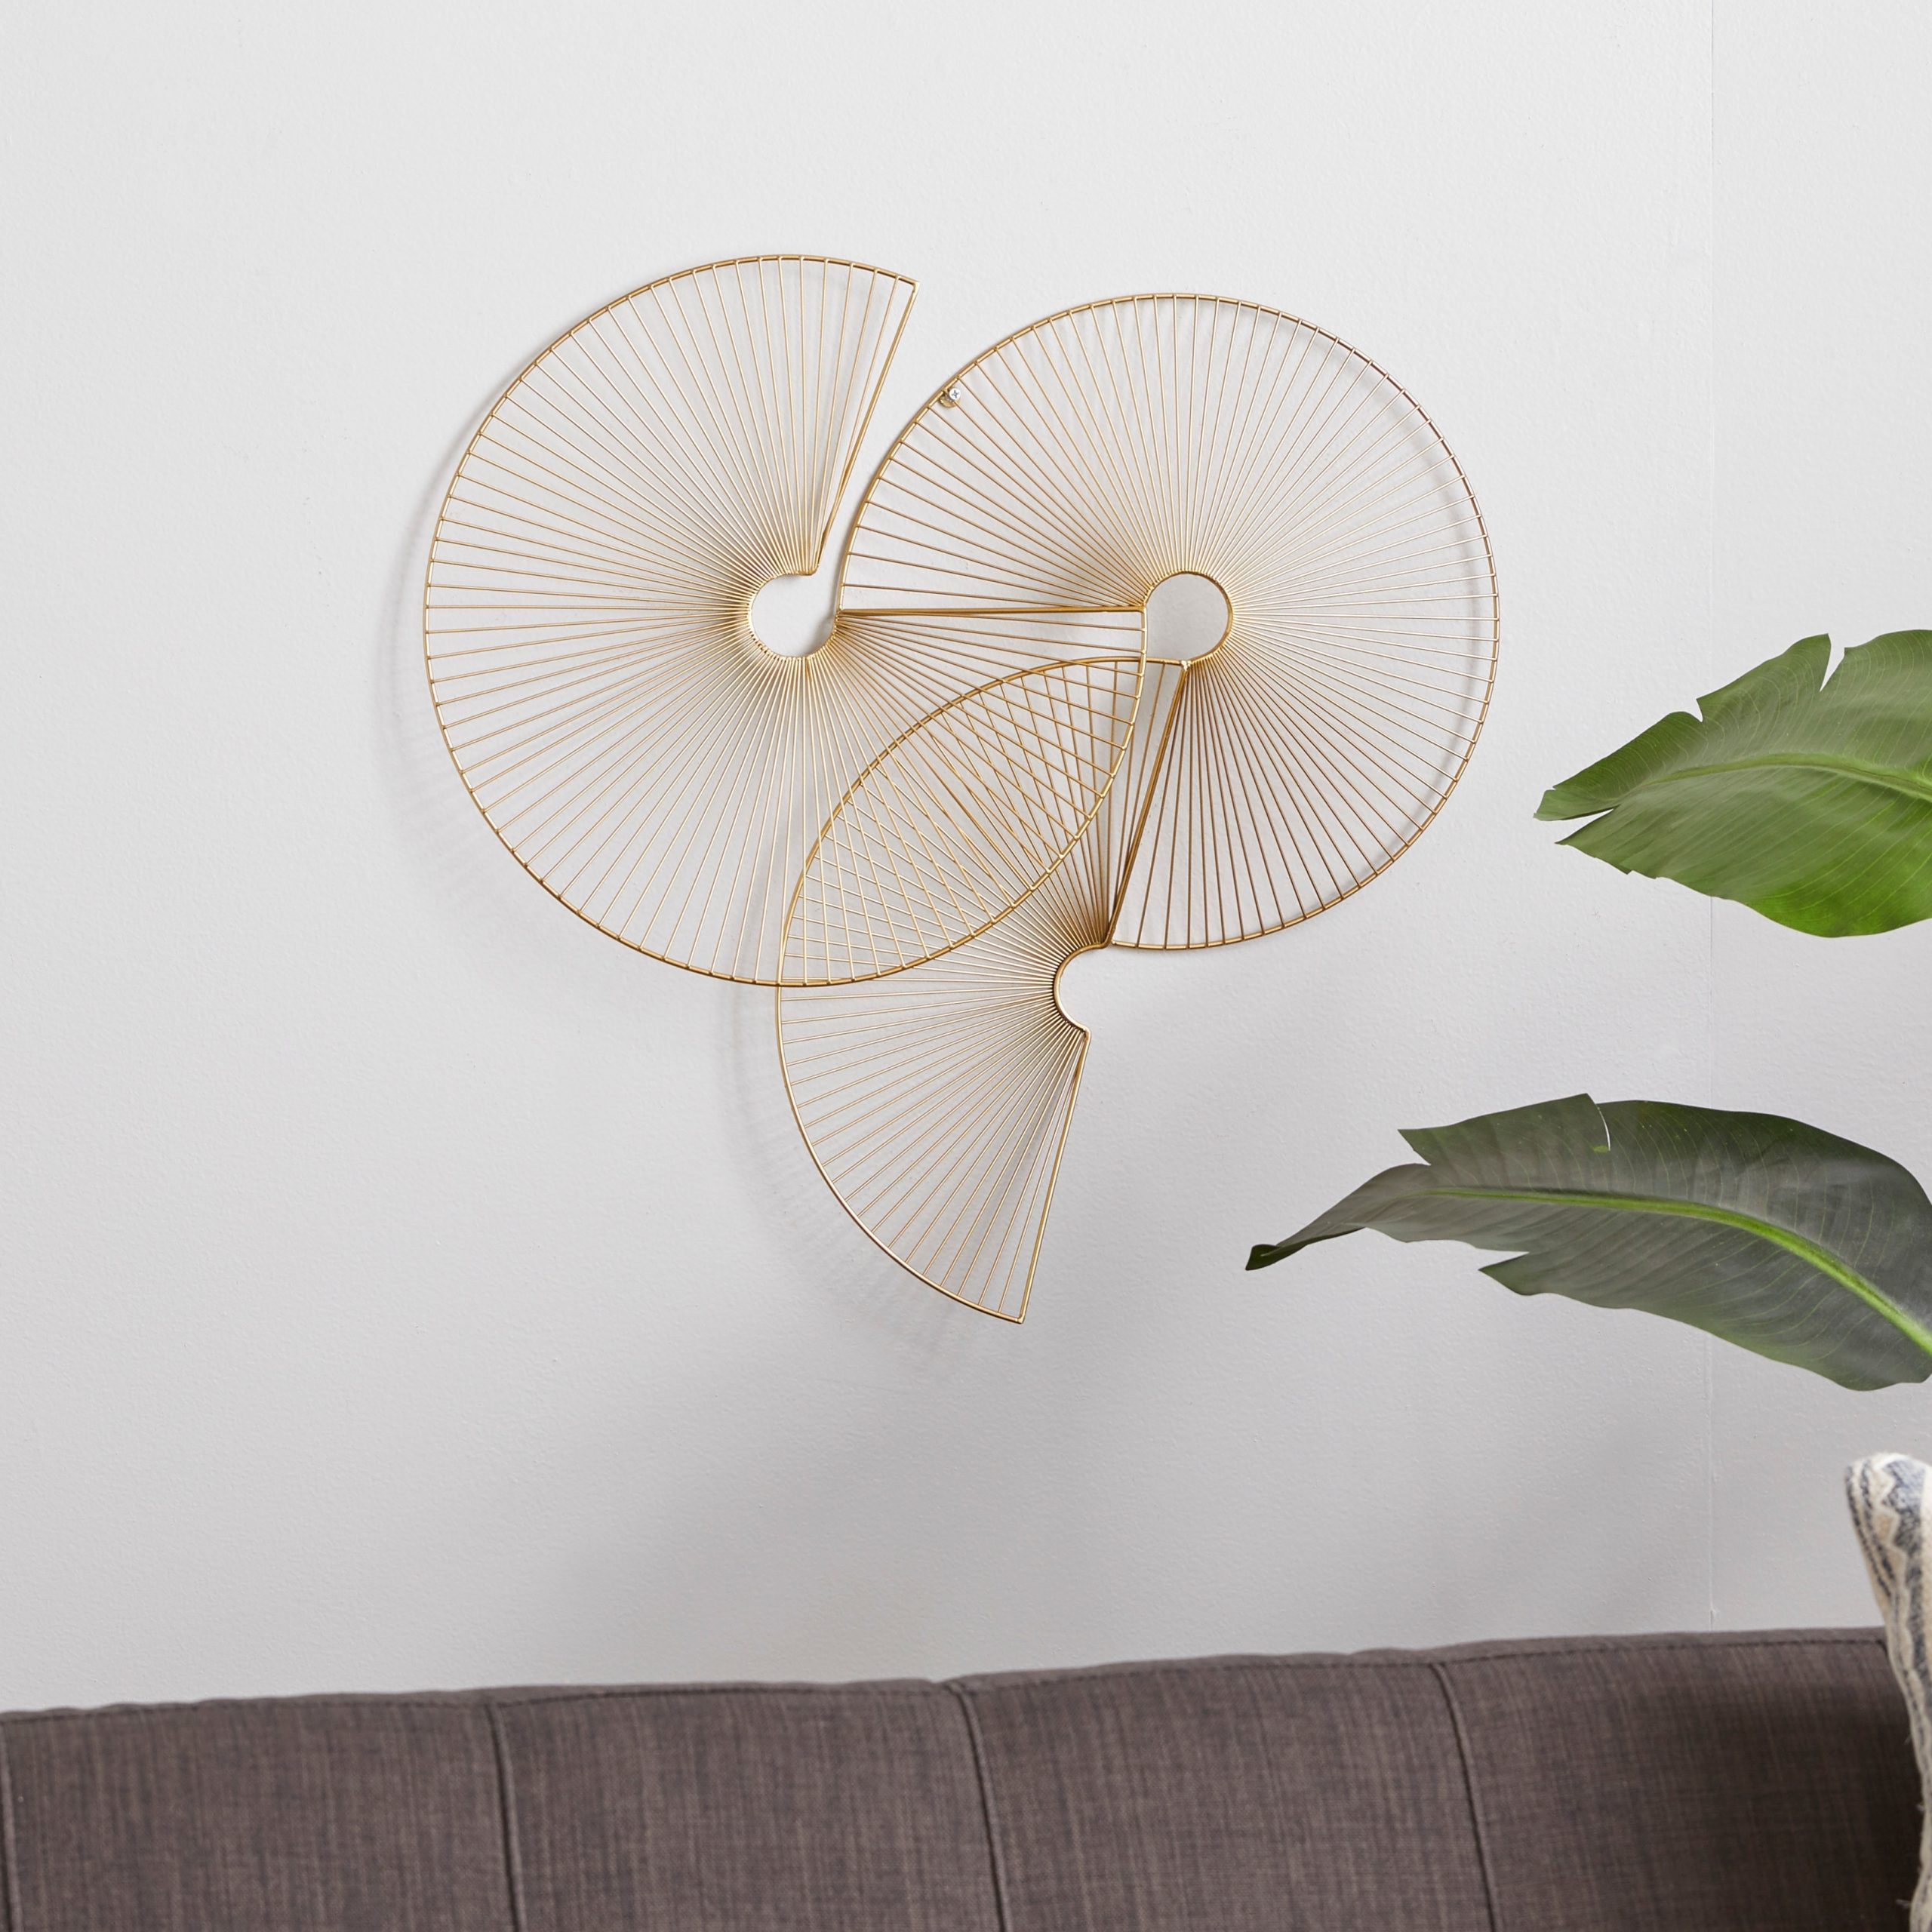 Cosmolivingcosmopolitan Gold Metal Wall Decor 23 X 23 X 3 – 23 X 3 X 23 With Regard To Most Up To Date Metal Wall Décor By Cosmoliving (View 2 of 20)